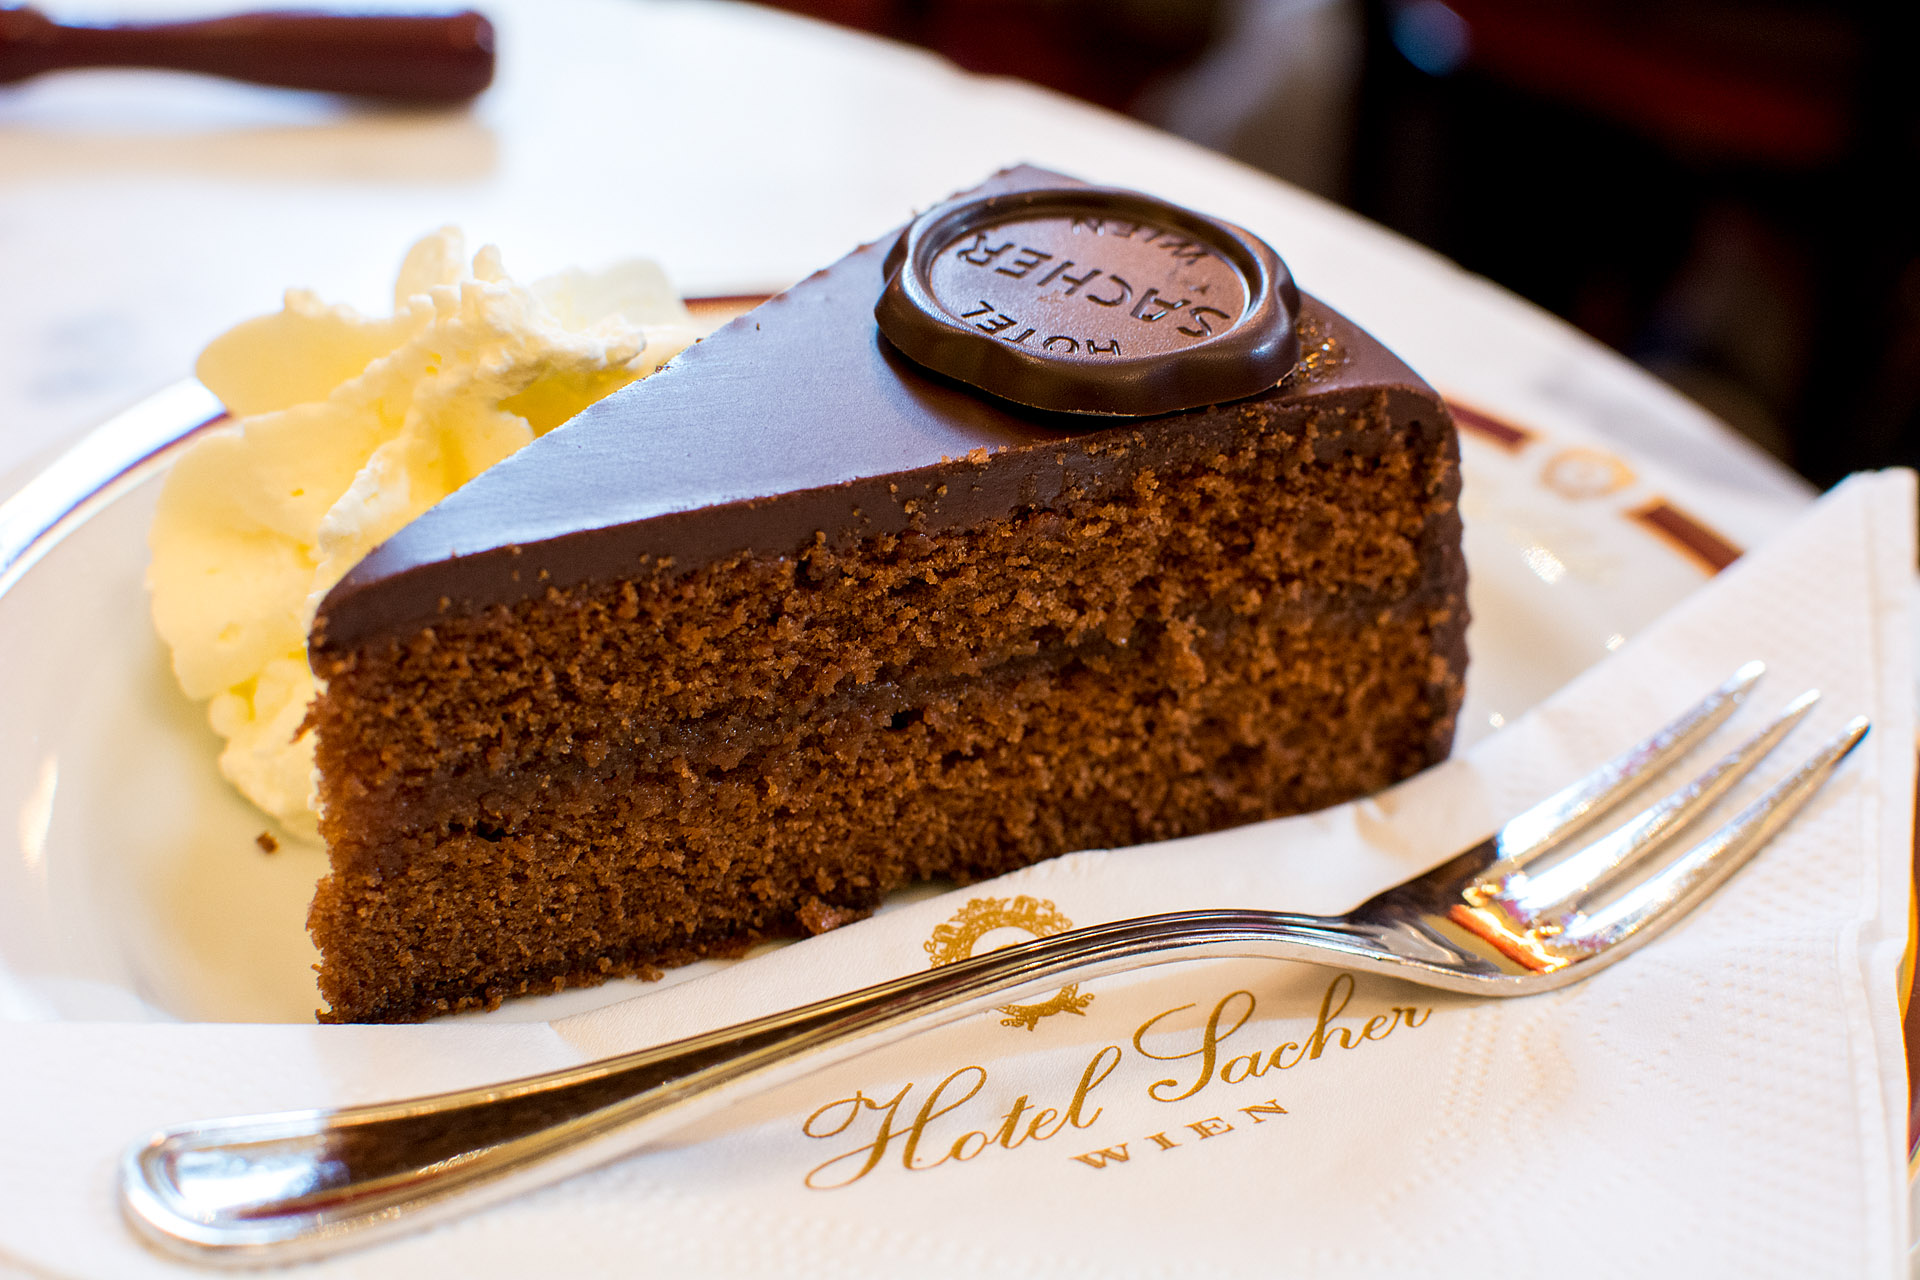 The Original Sacher-Torte